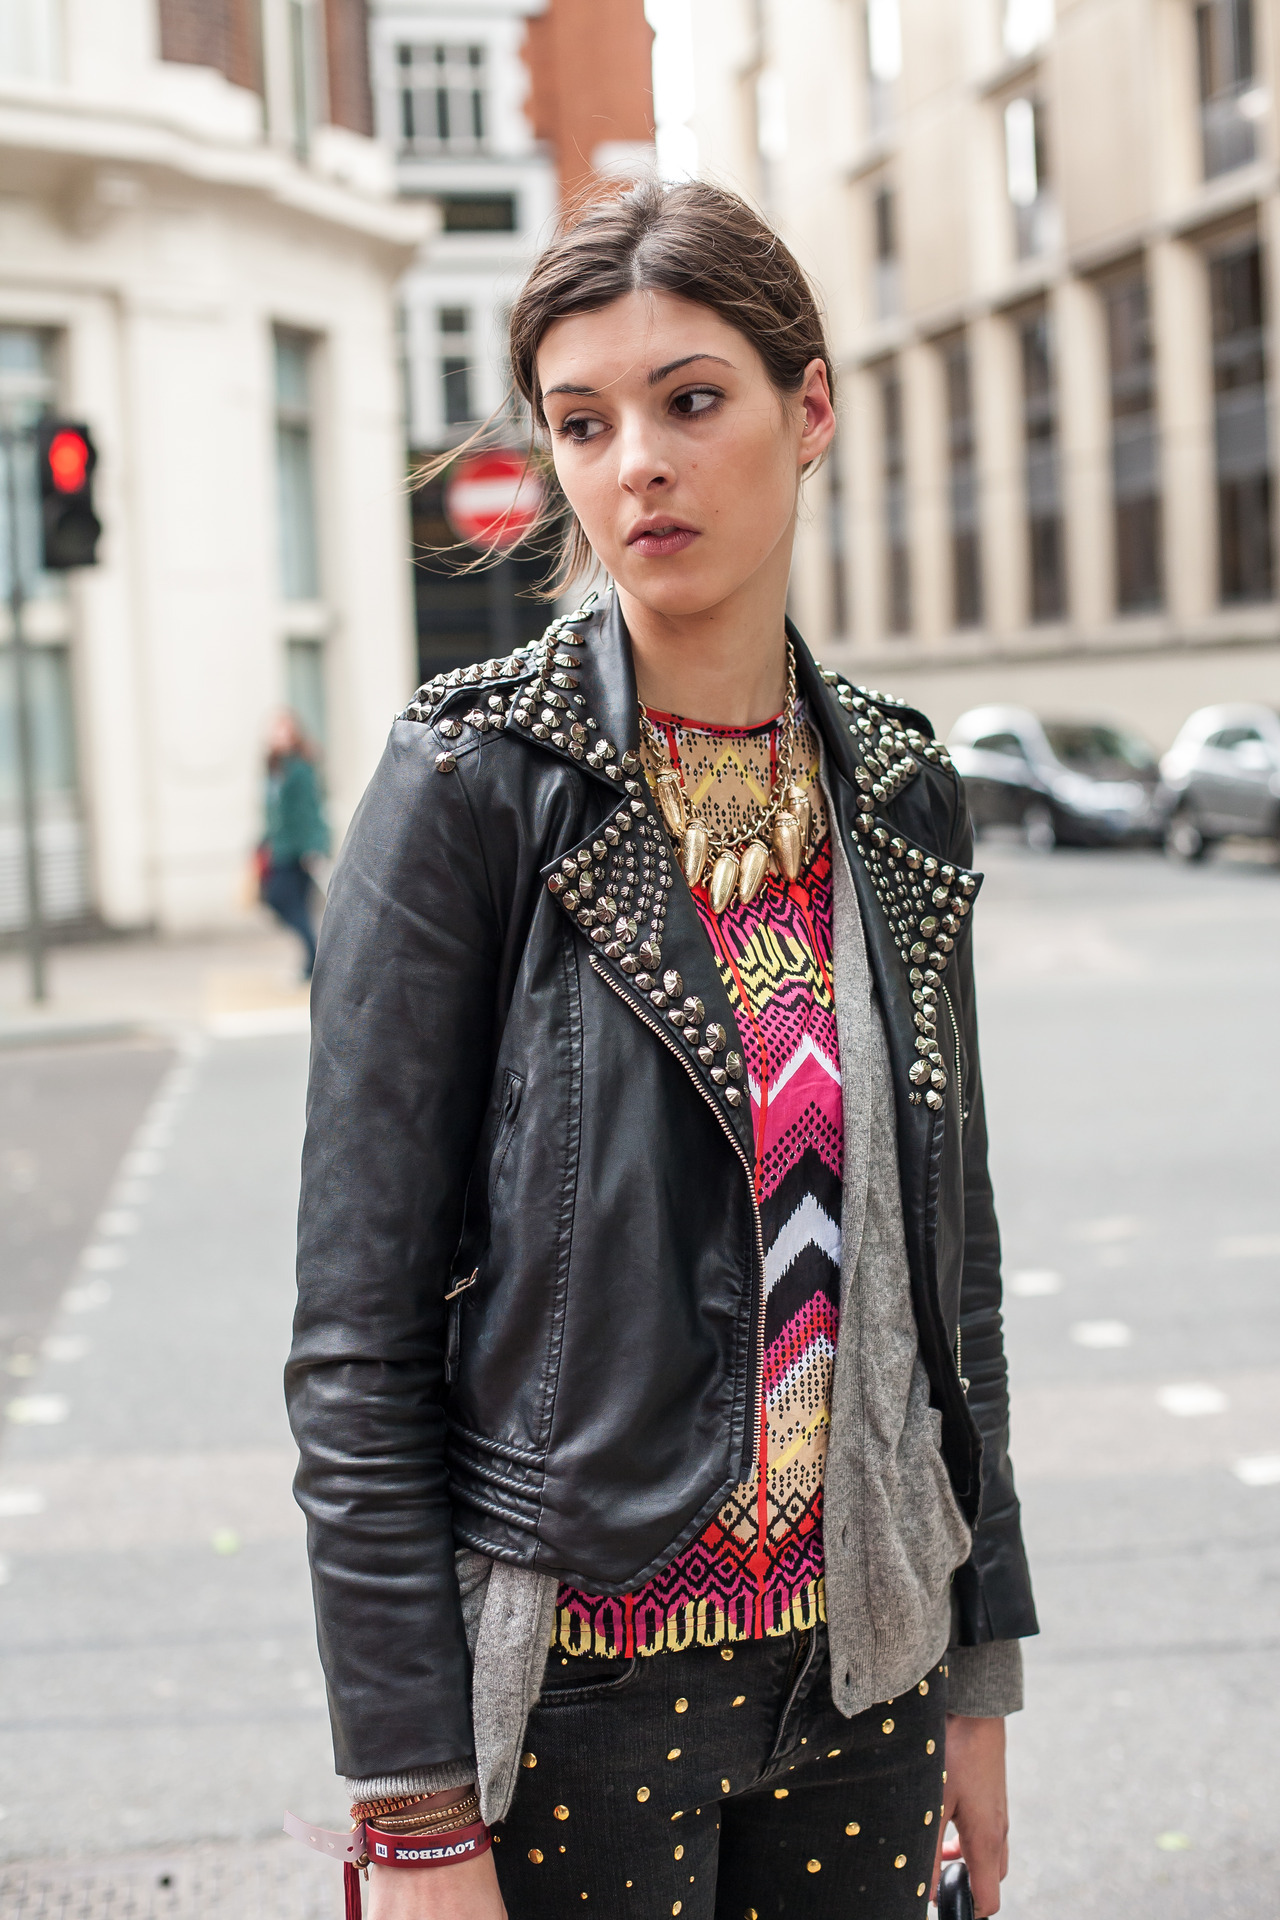 topshop:  Studs, studs, studs we'll never get enough of them! They look especially cool on these skinny trousers.